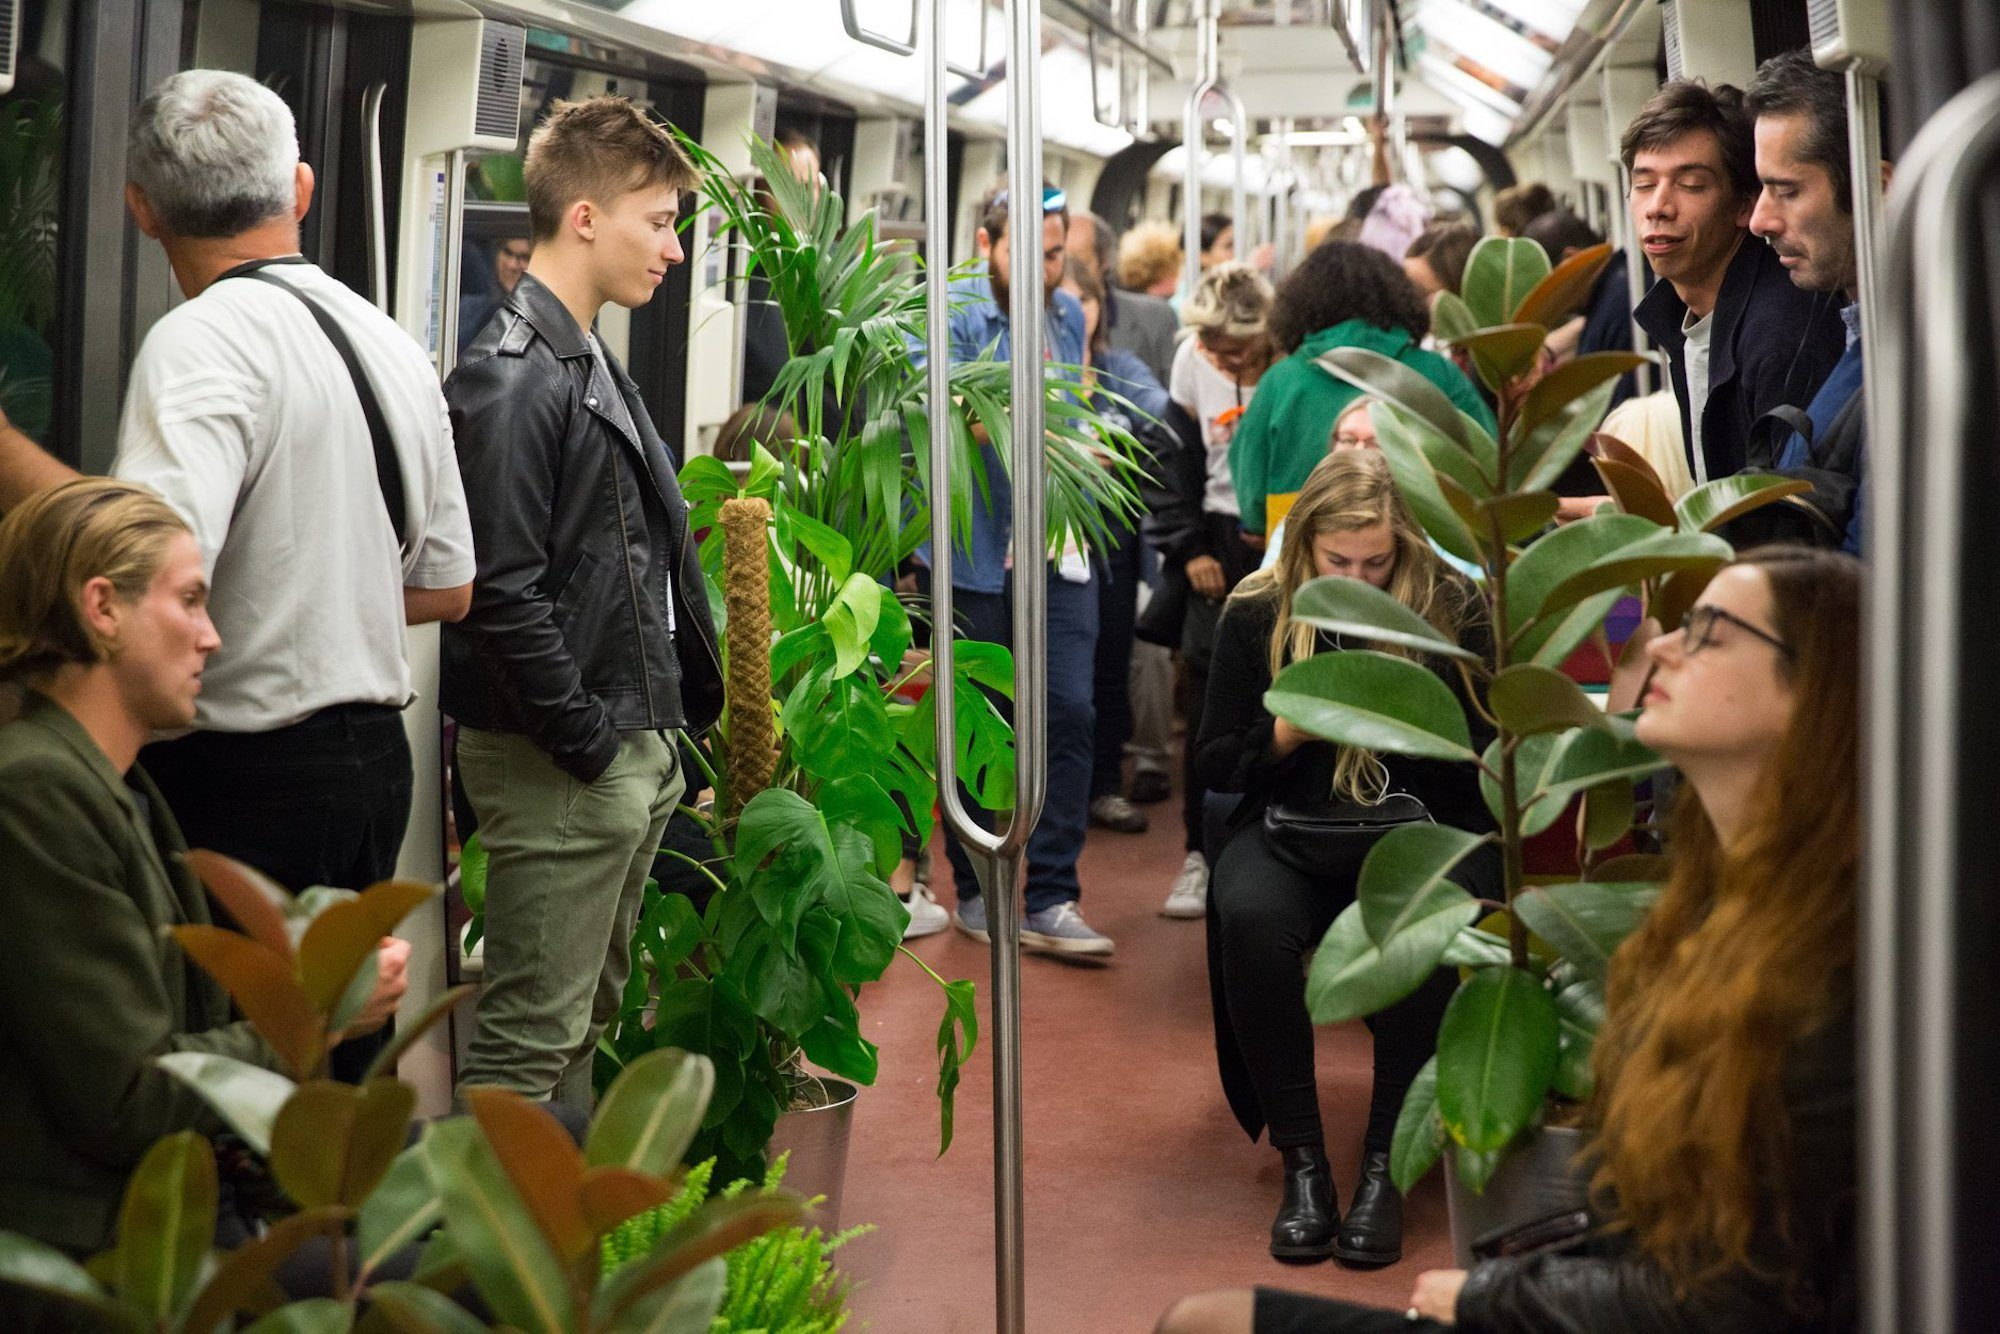 People on the metro which has been adorned with green plants.